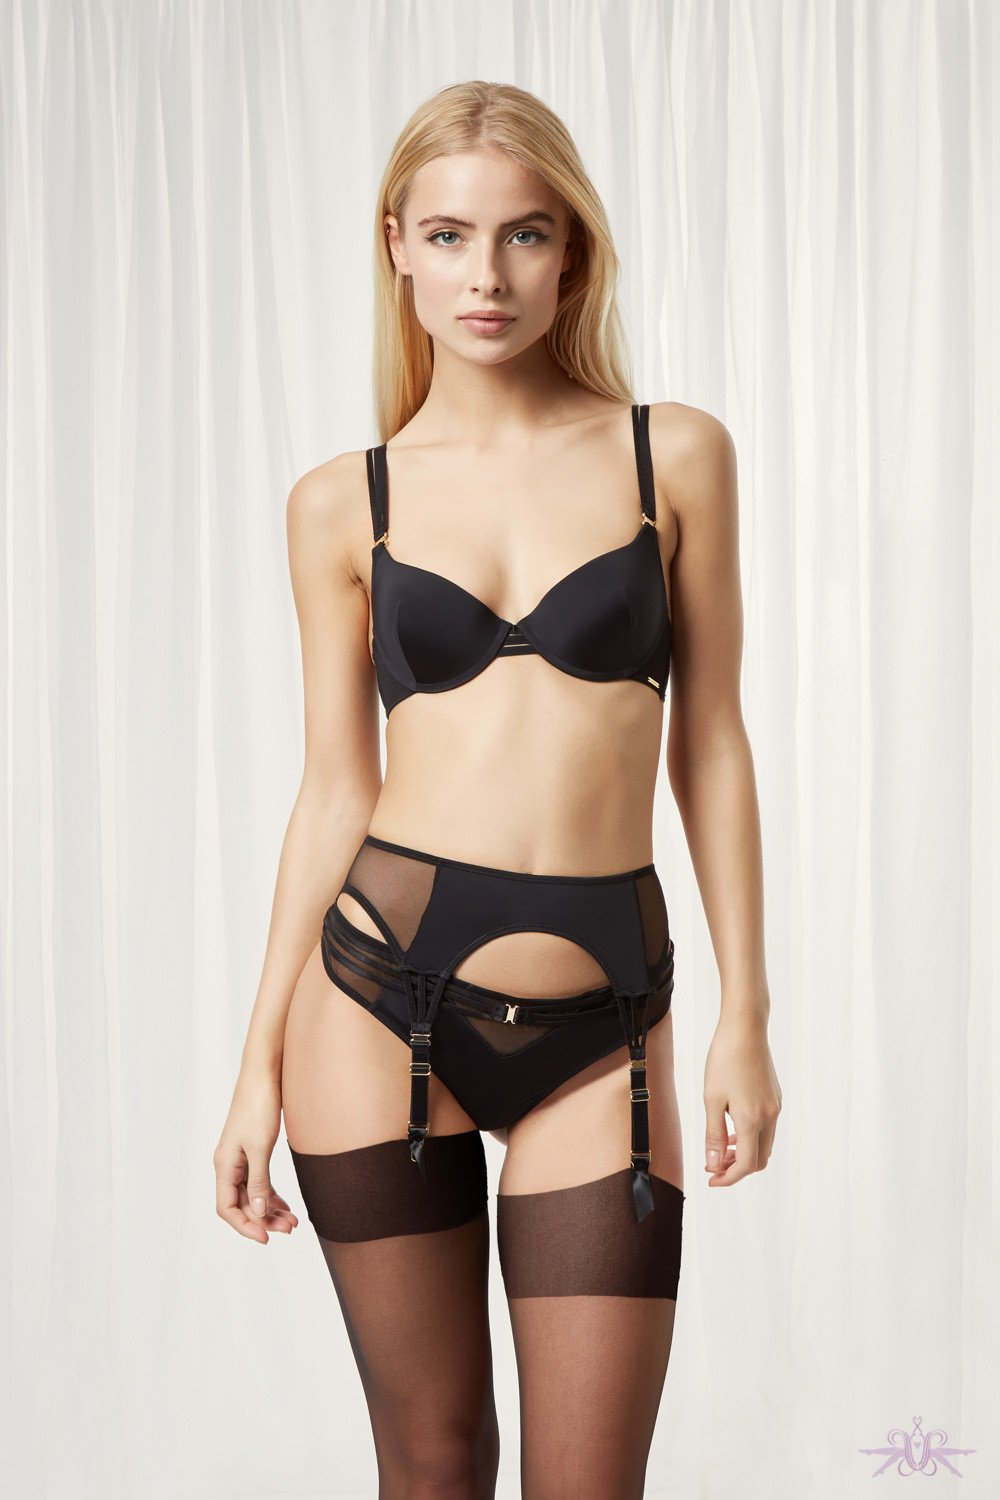 Bluebella Laura Suspender Belt - The Hosiery Box